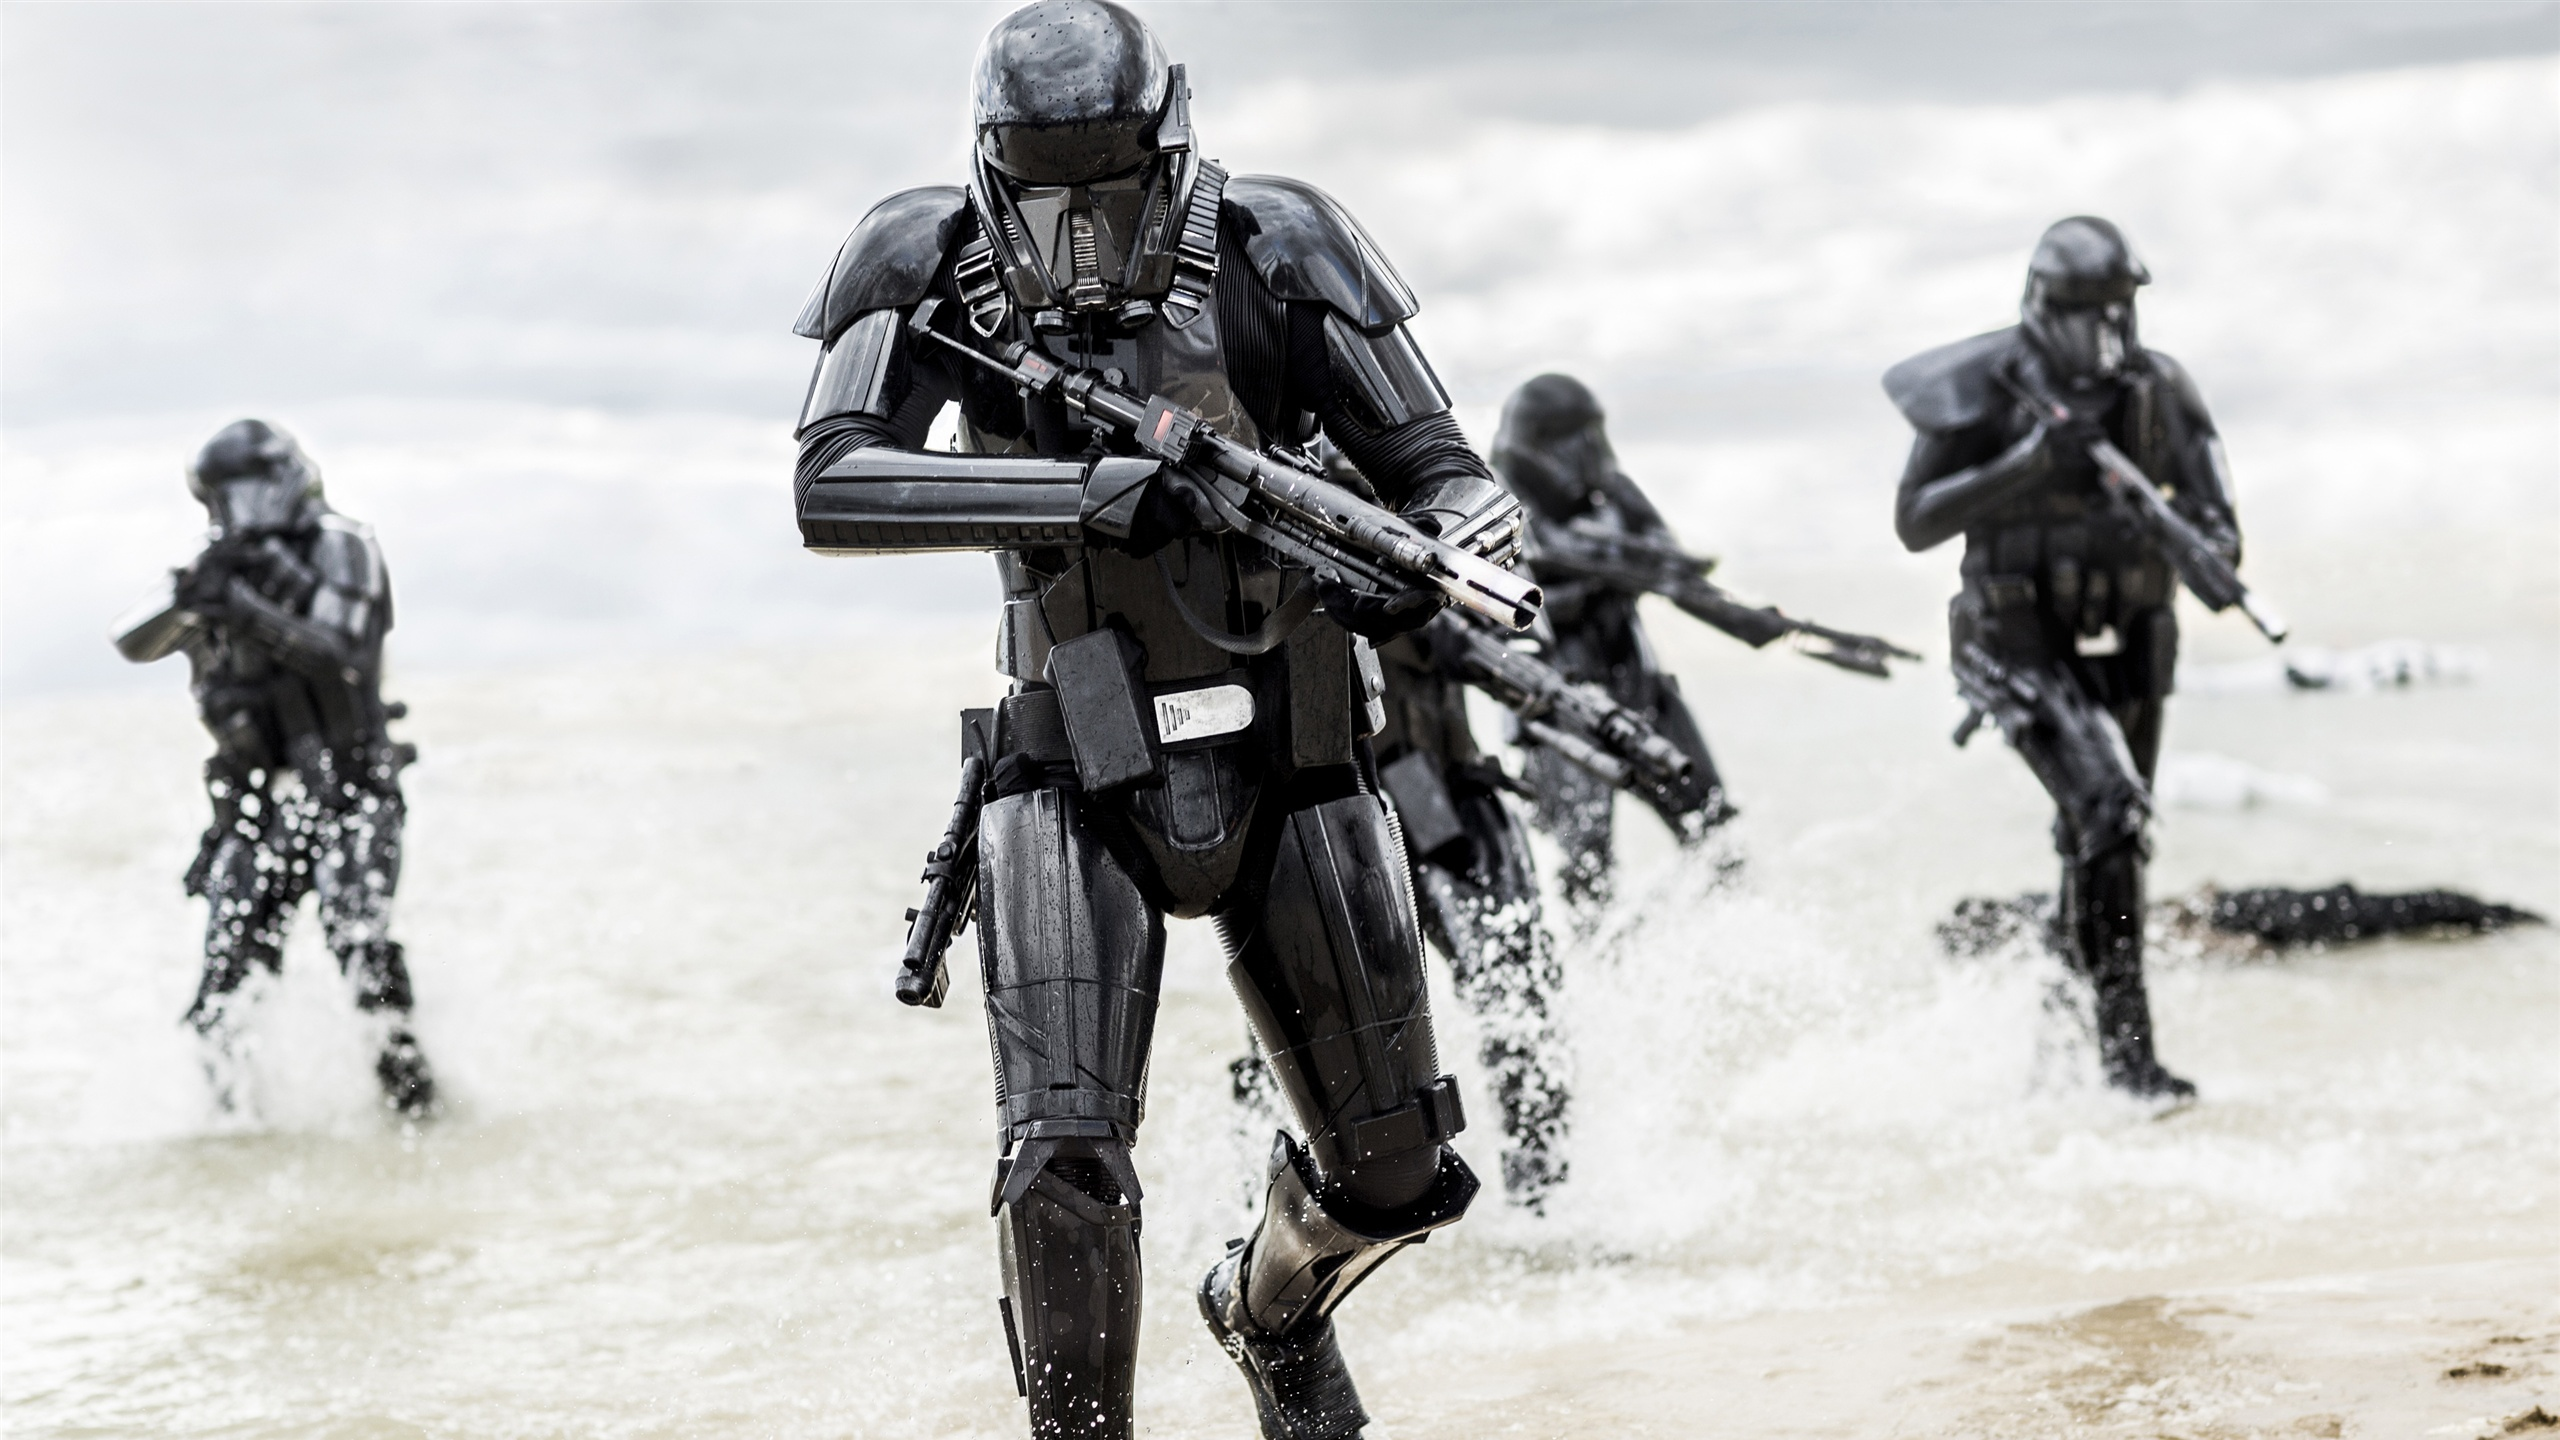 Wallpaper Rogue One A Star Wars Story Soldiers 3840x2160 Uhd 4k Picture Image